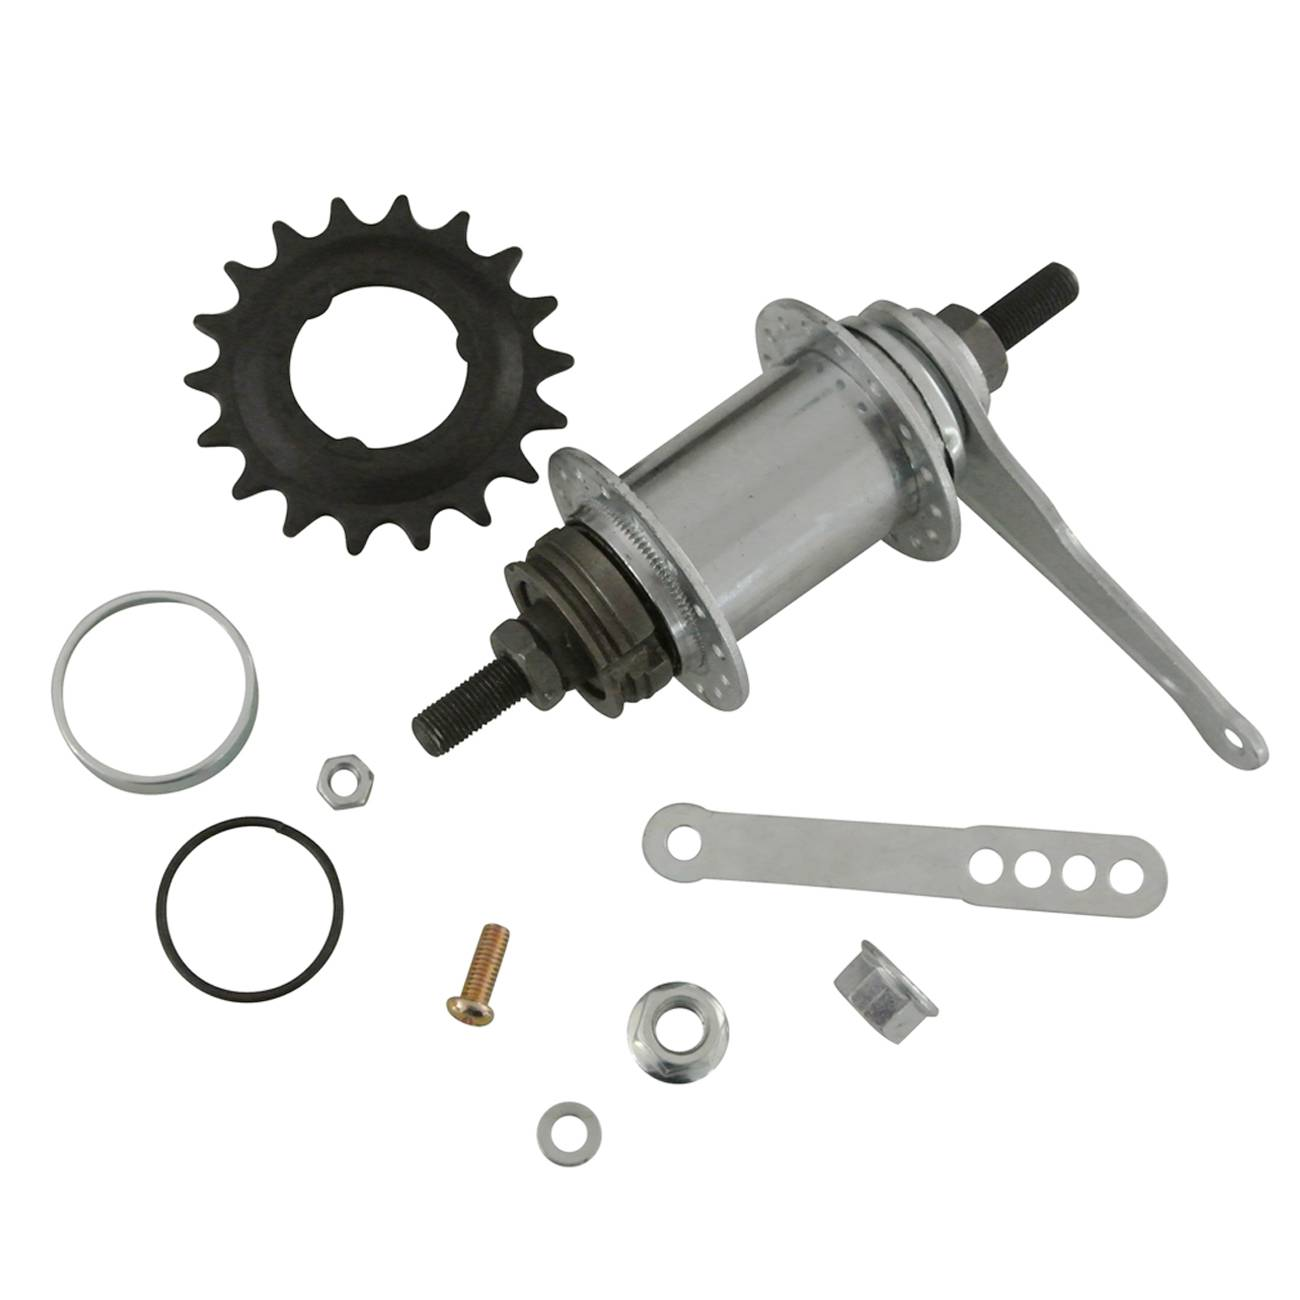 32 Holes Brake Rear Hub Stainless For Fixed Gear Bicycle Coaster billet rear hub carriers for losi 5ive t